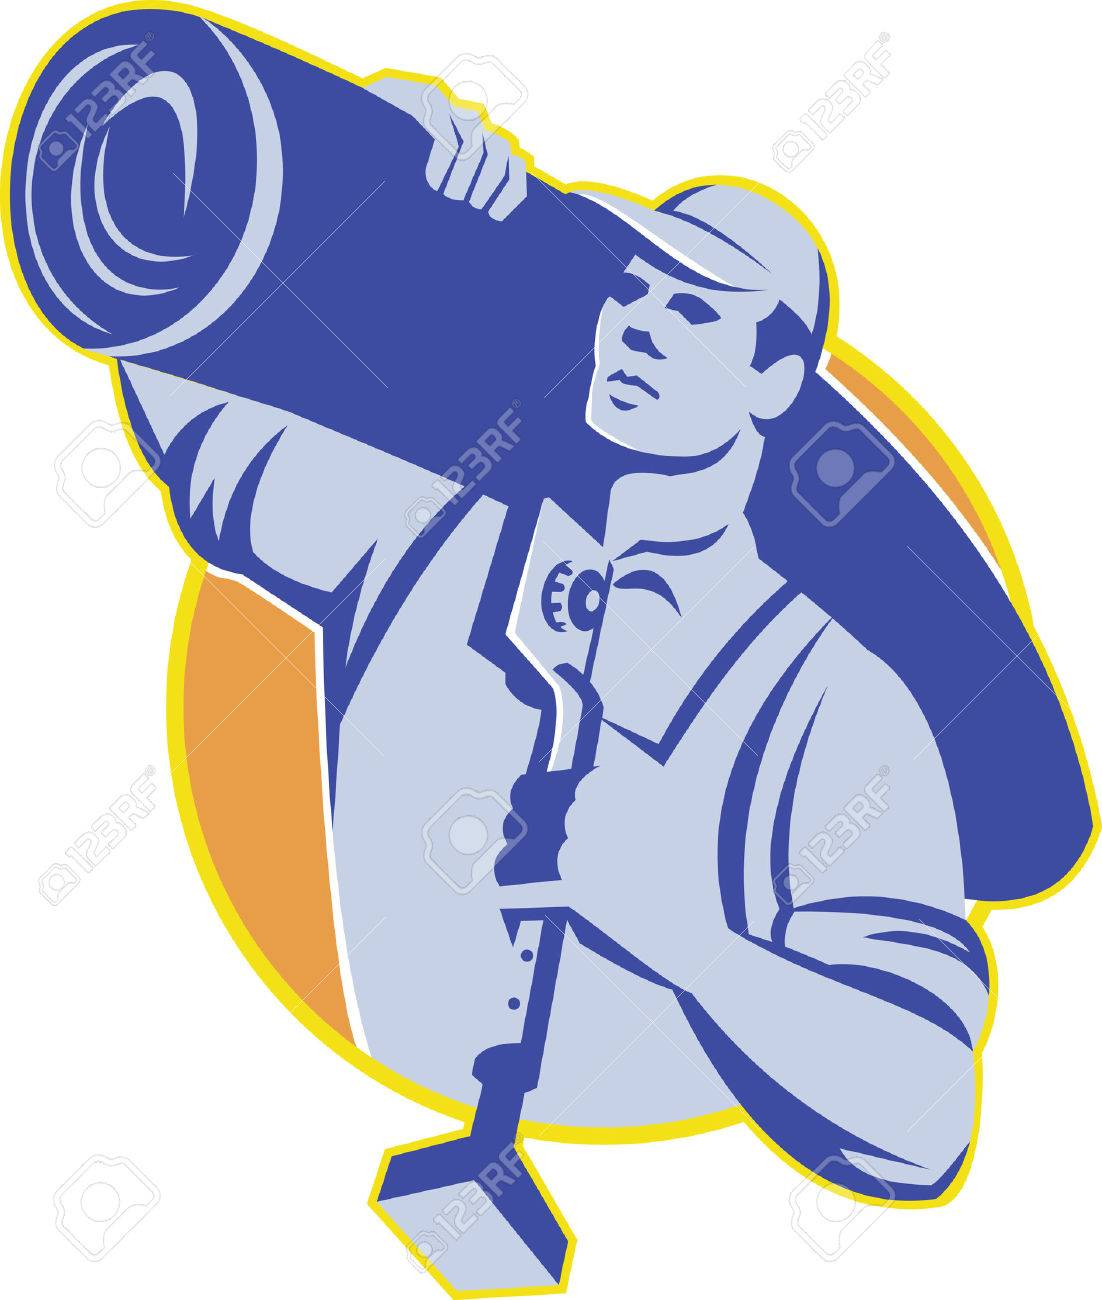 Illustration of a carpet layer carrying a roll of carpet on shoulder holding a knee kicker tool set inside circle done in retro style. Stock Vector - 35643023